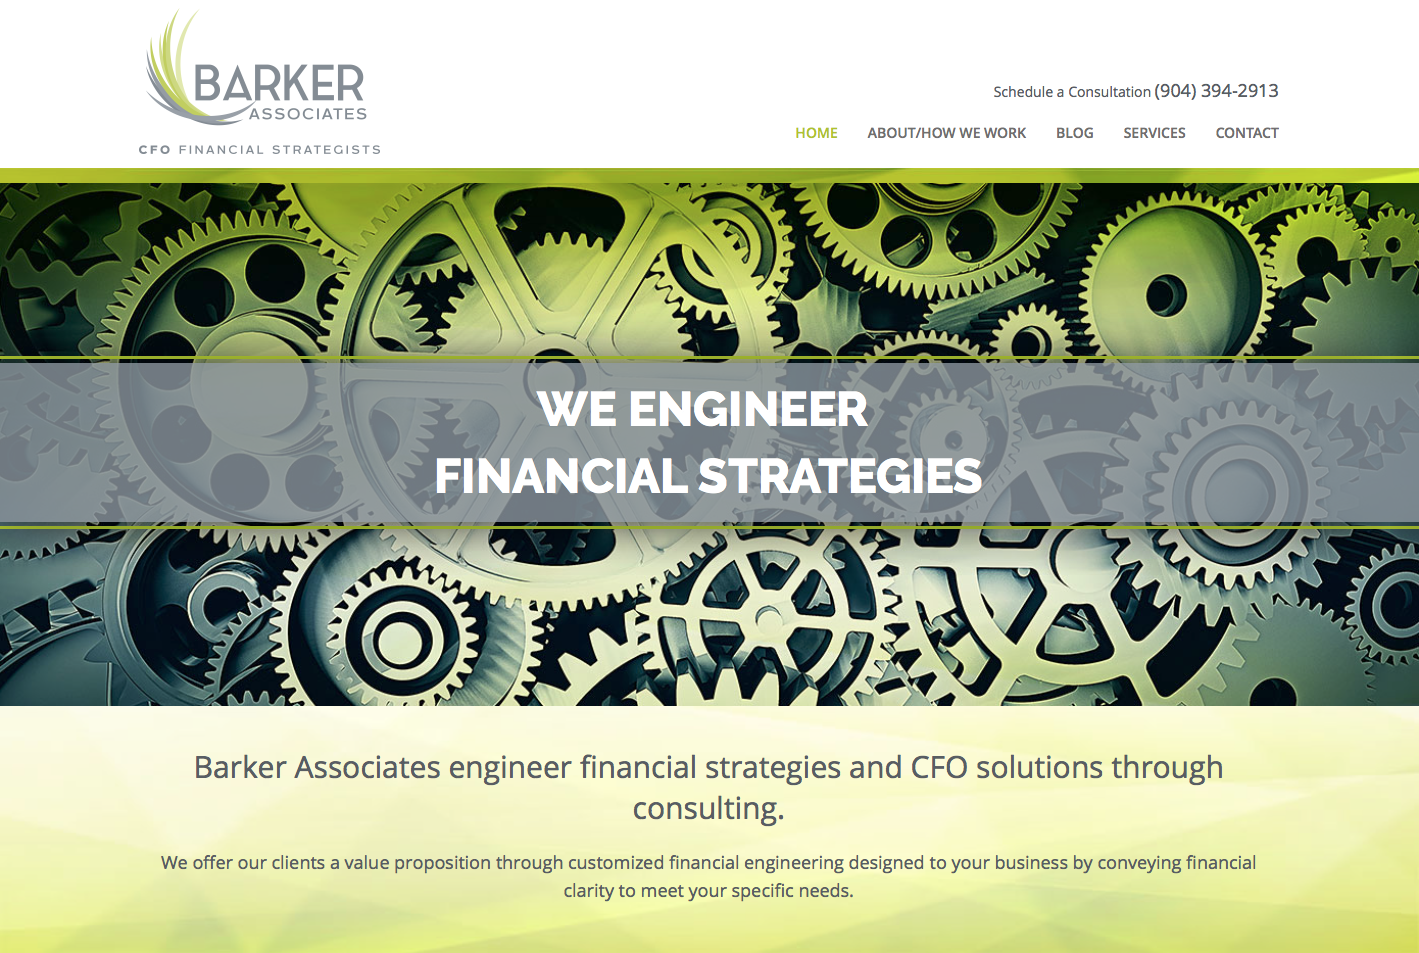 Barker Associates CFO Financial Strategists Website Design